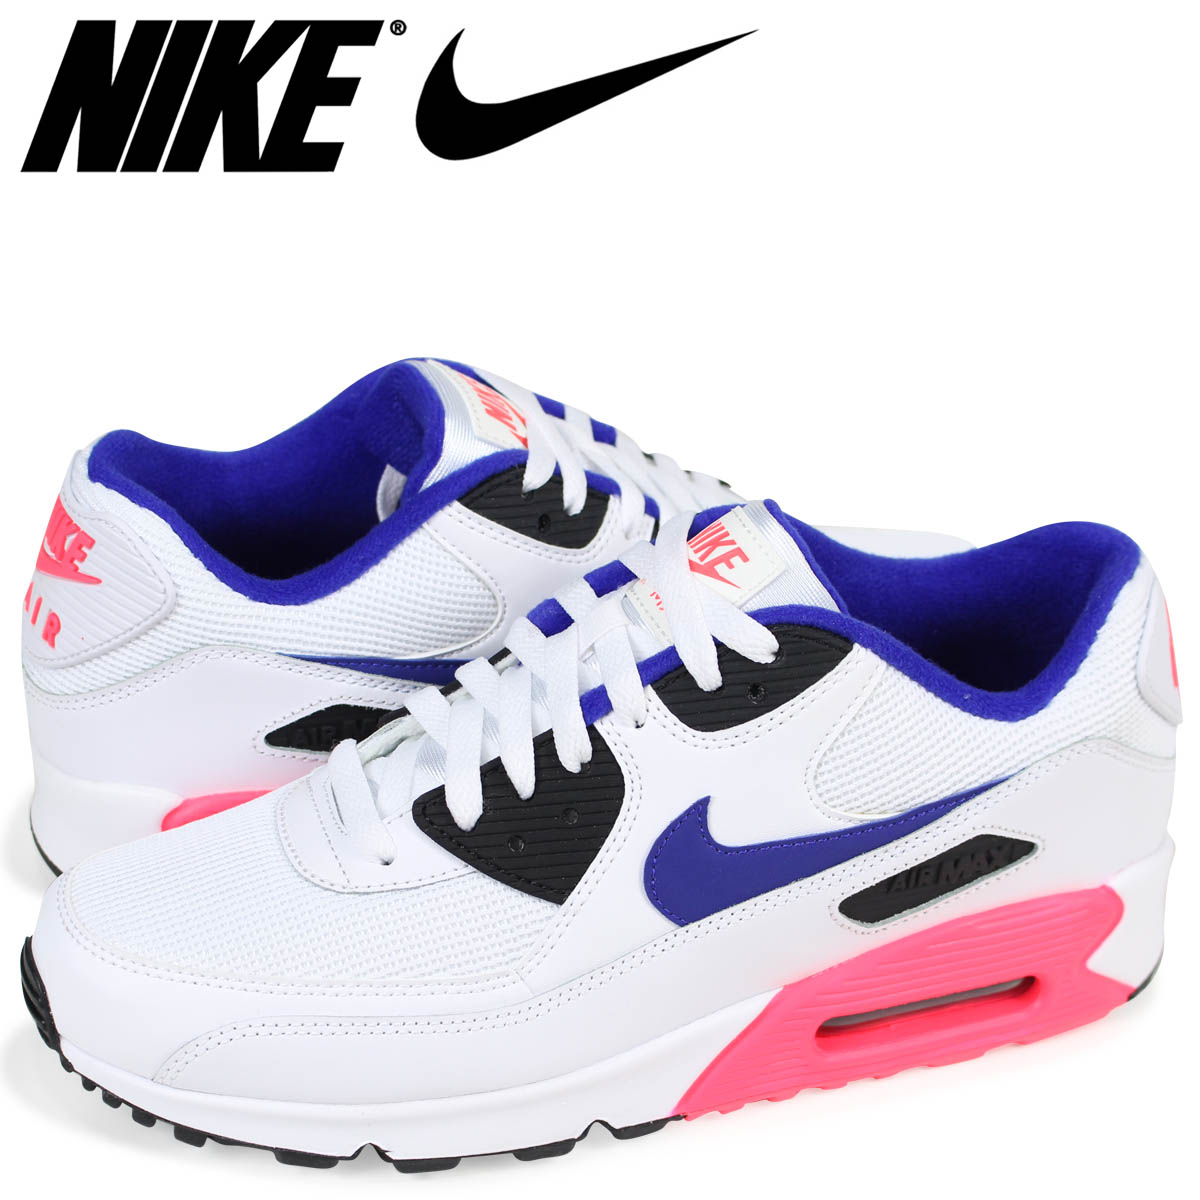 save off 9c521 ae841 NIKE AIR MAX 90 ESSENTIAL Kie Ney AMAX 90 essential sneakers men 537,384-136  white  4 3 reentry load